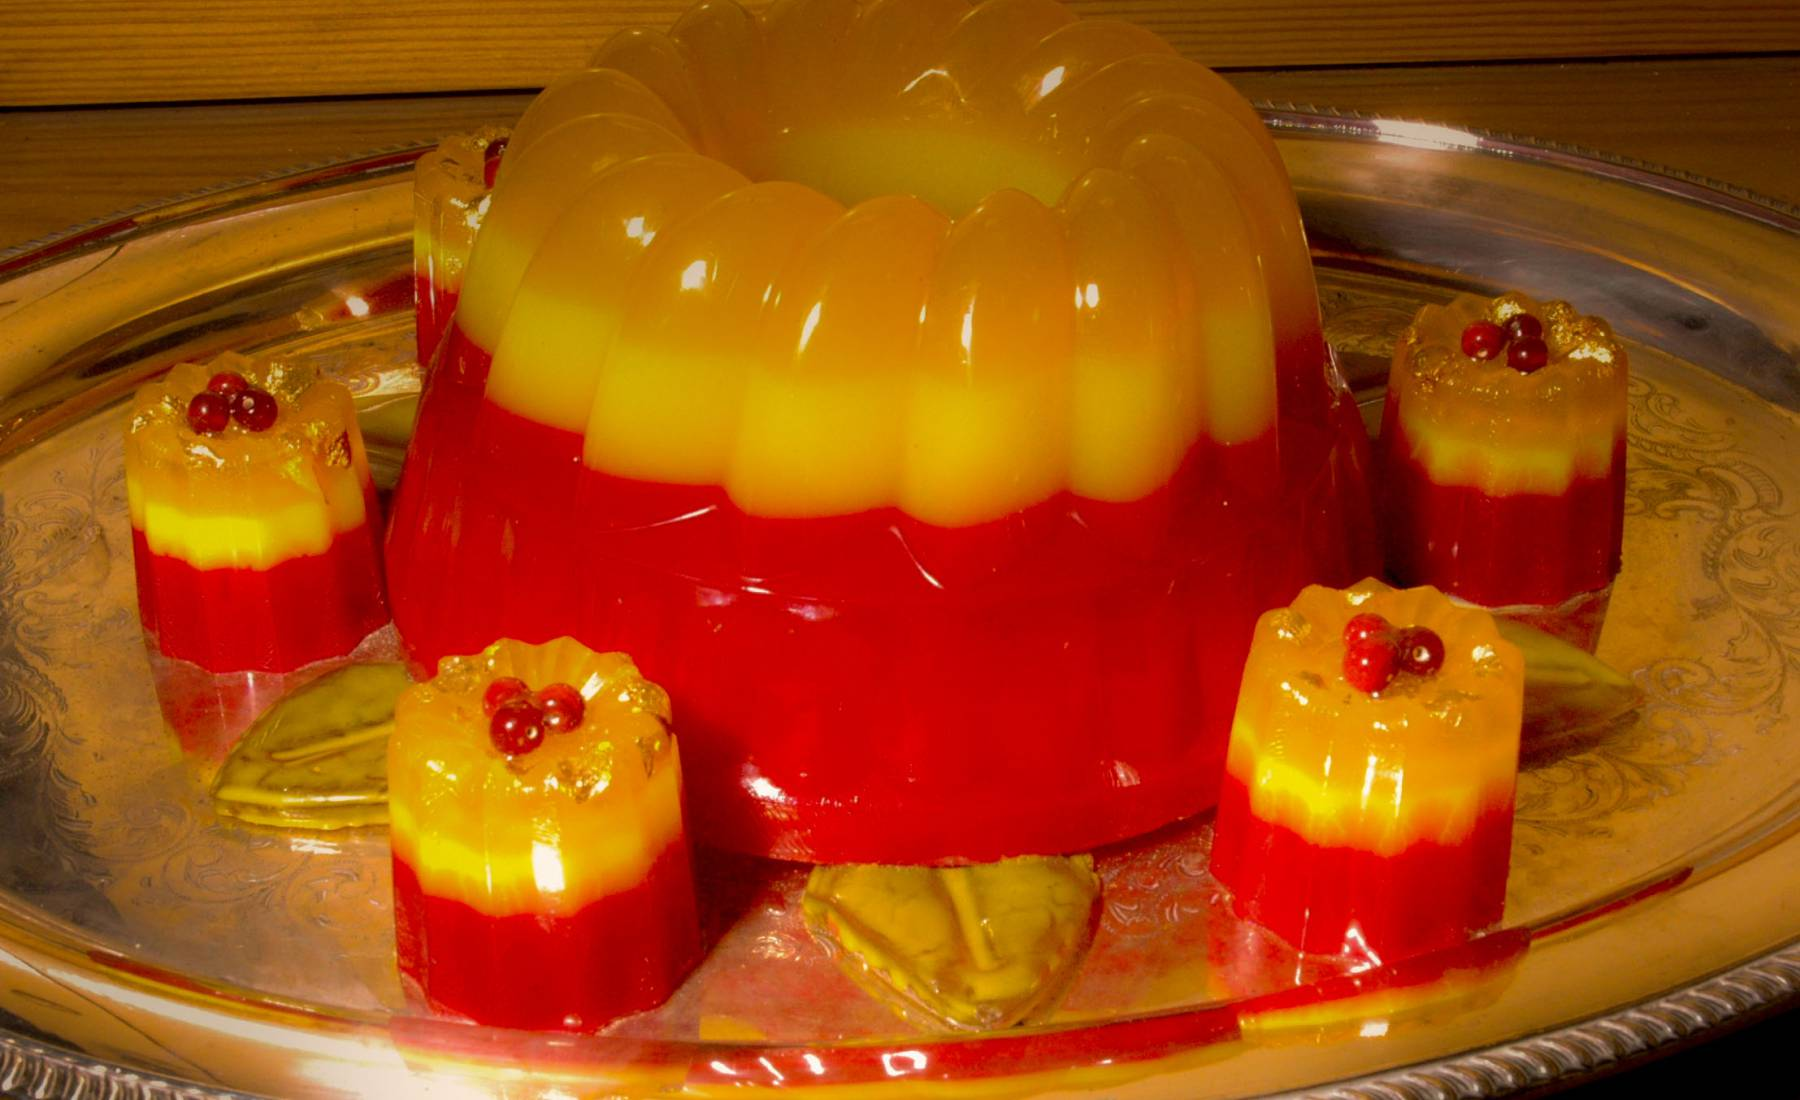 jellies, yellow, red, coloured resin, galley kitchen, s.s. great britain, puddings, banquet, victorian